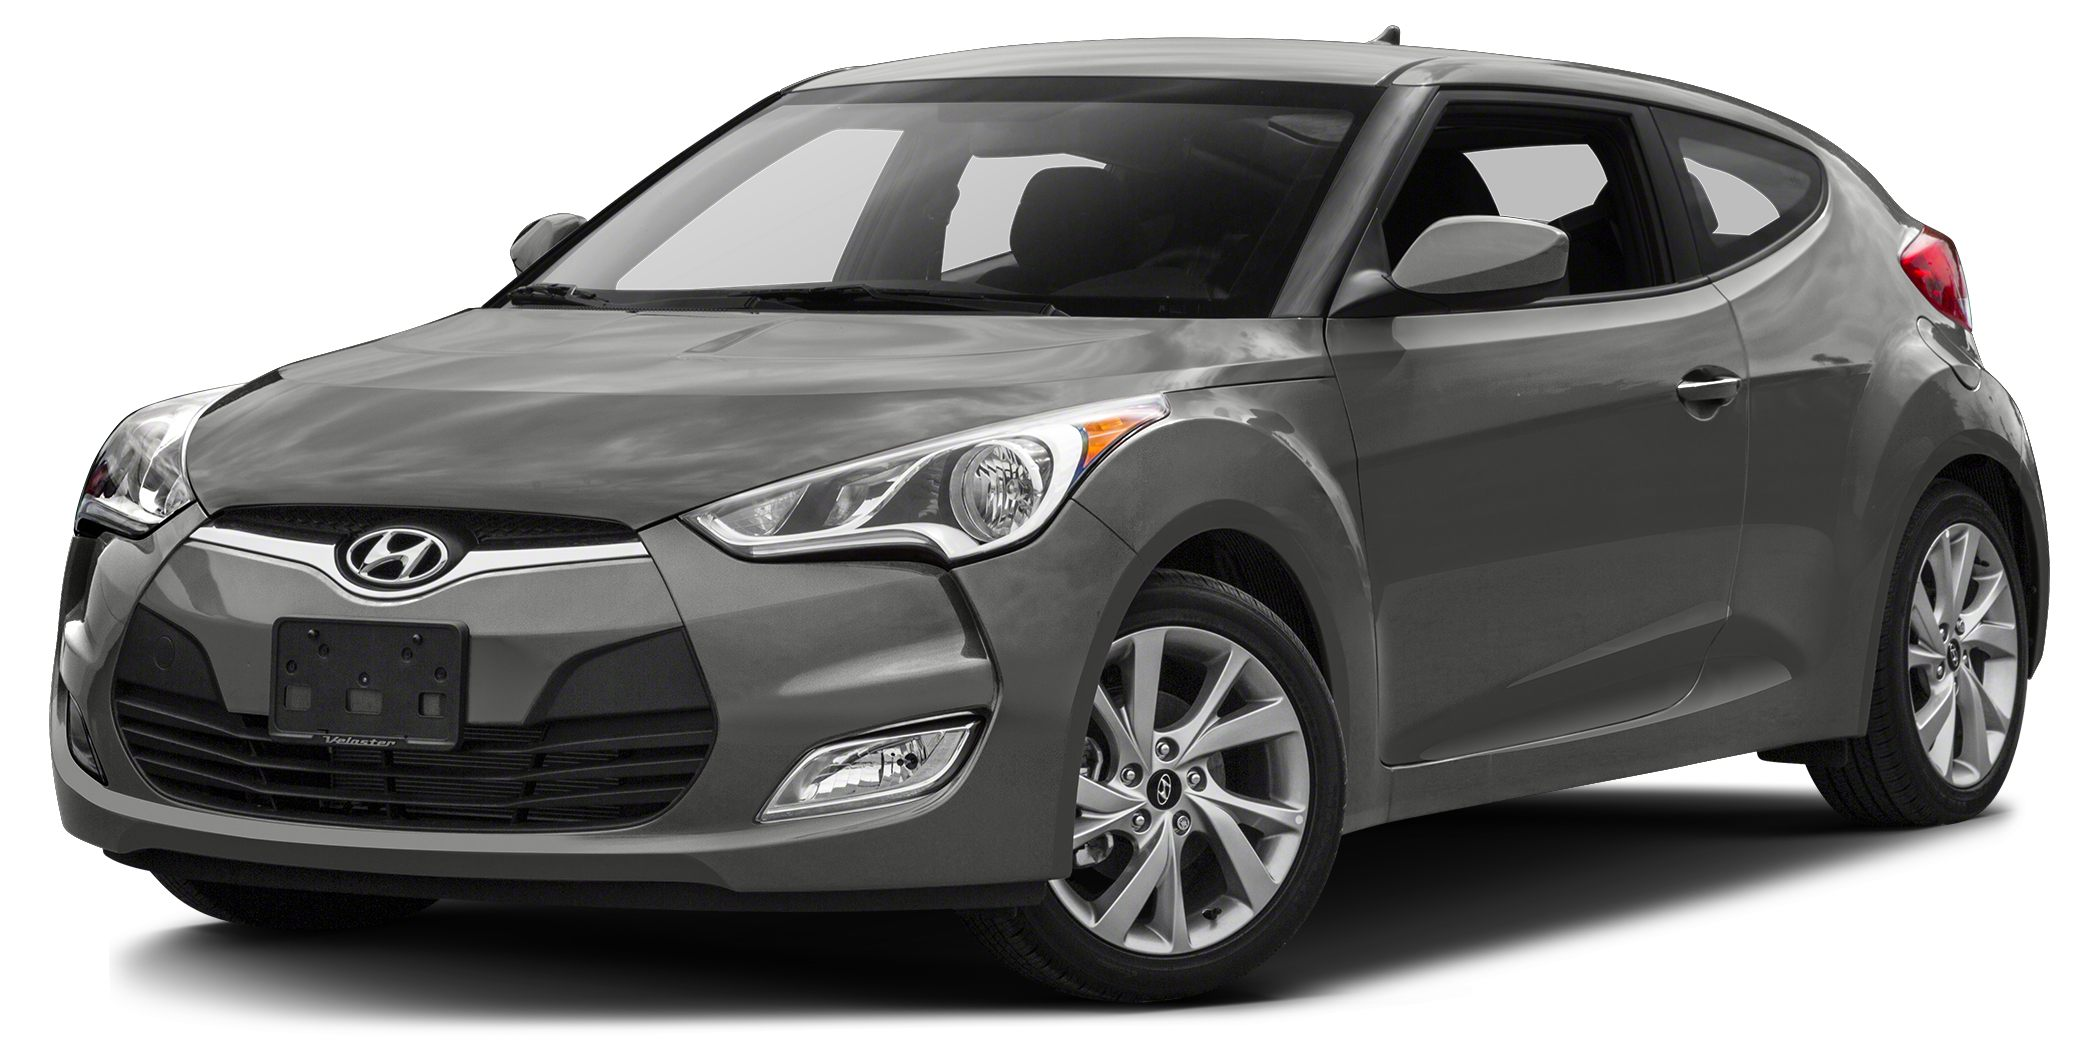 2016 Hyundai Veloster Base Veloster trim FUEL EFFICIENT 36 MPG Hwy28 MPG City CARFAX 1-Owner i